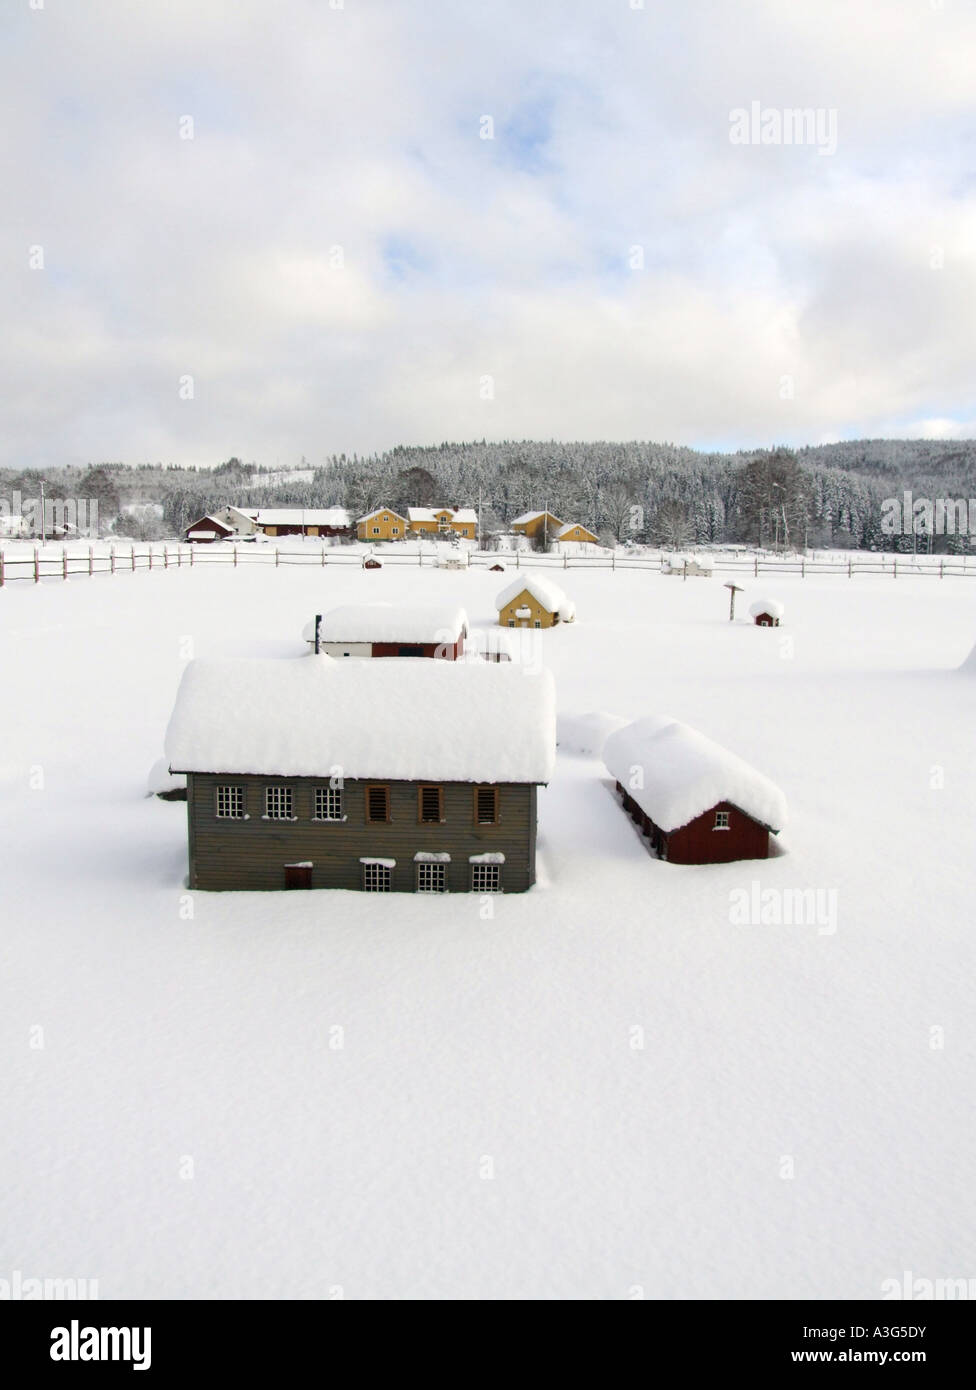 Naturskna Dalen - Houses for Rent in Timmele - Airbnb